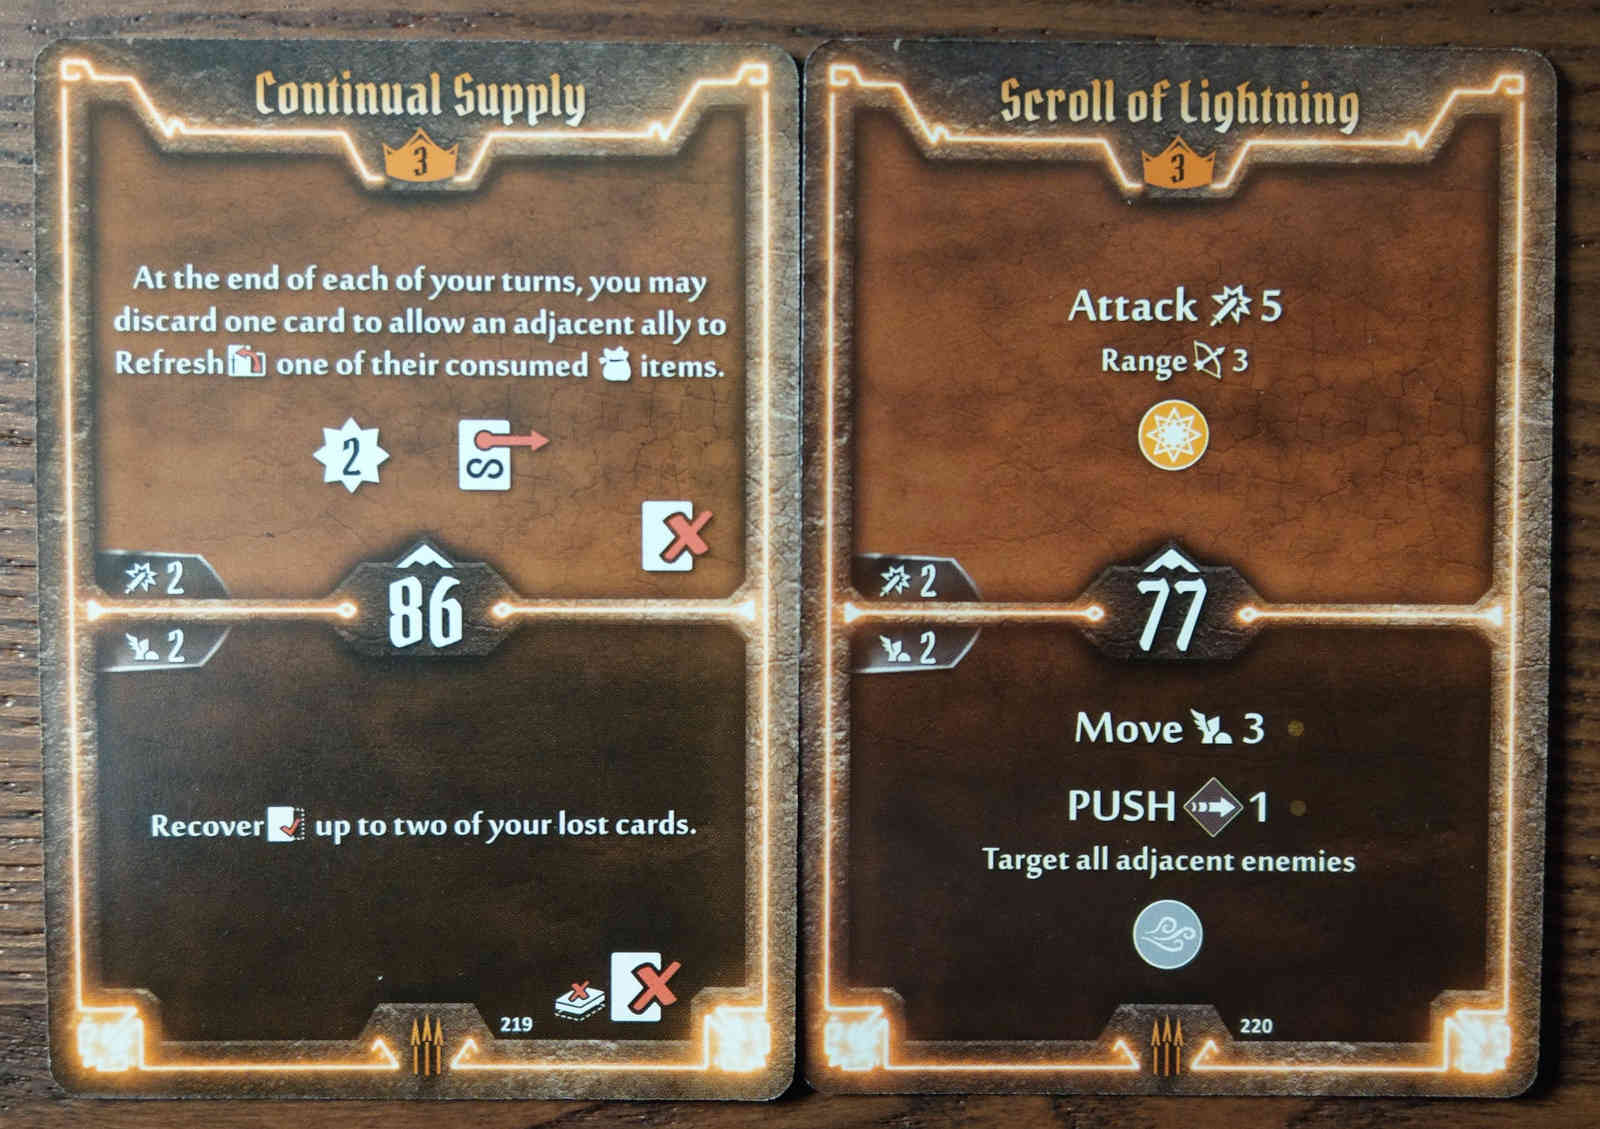 Level 3 Quartermaster cards - Continual Supply and Scroll of Lightning